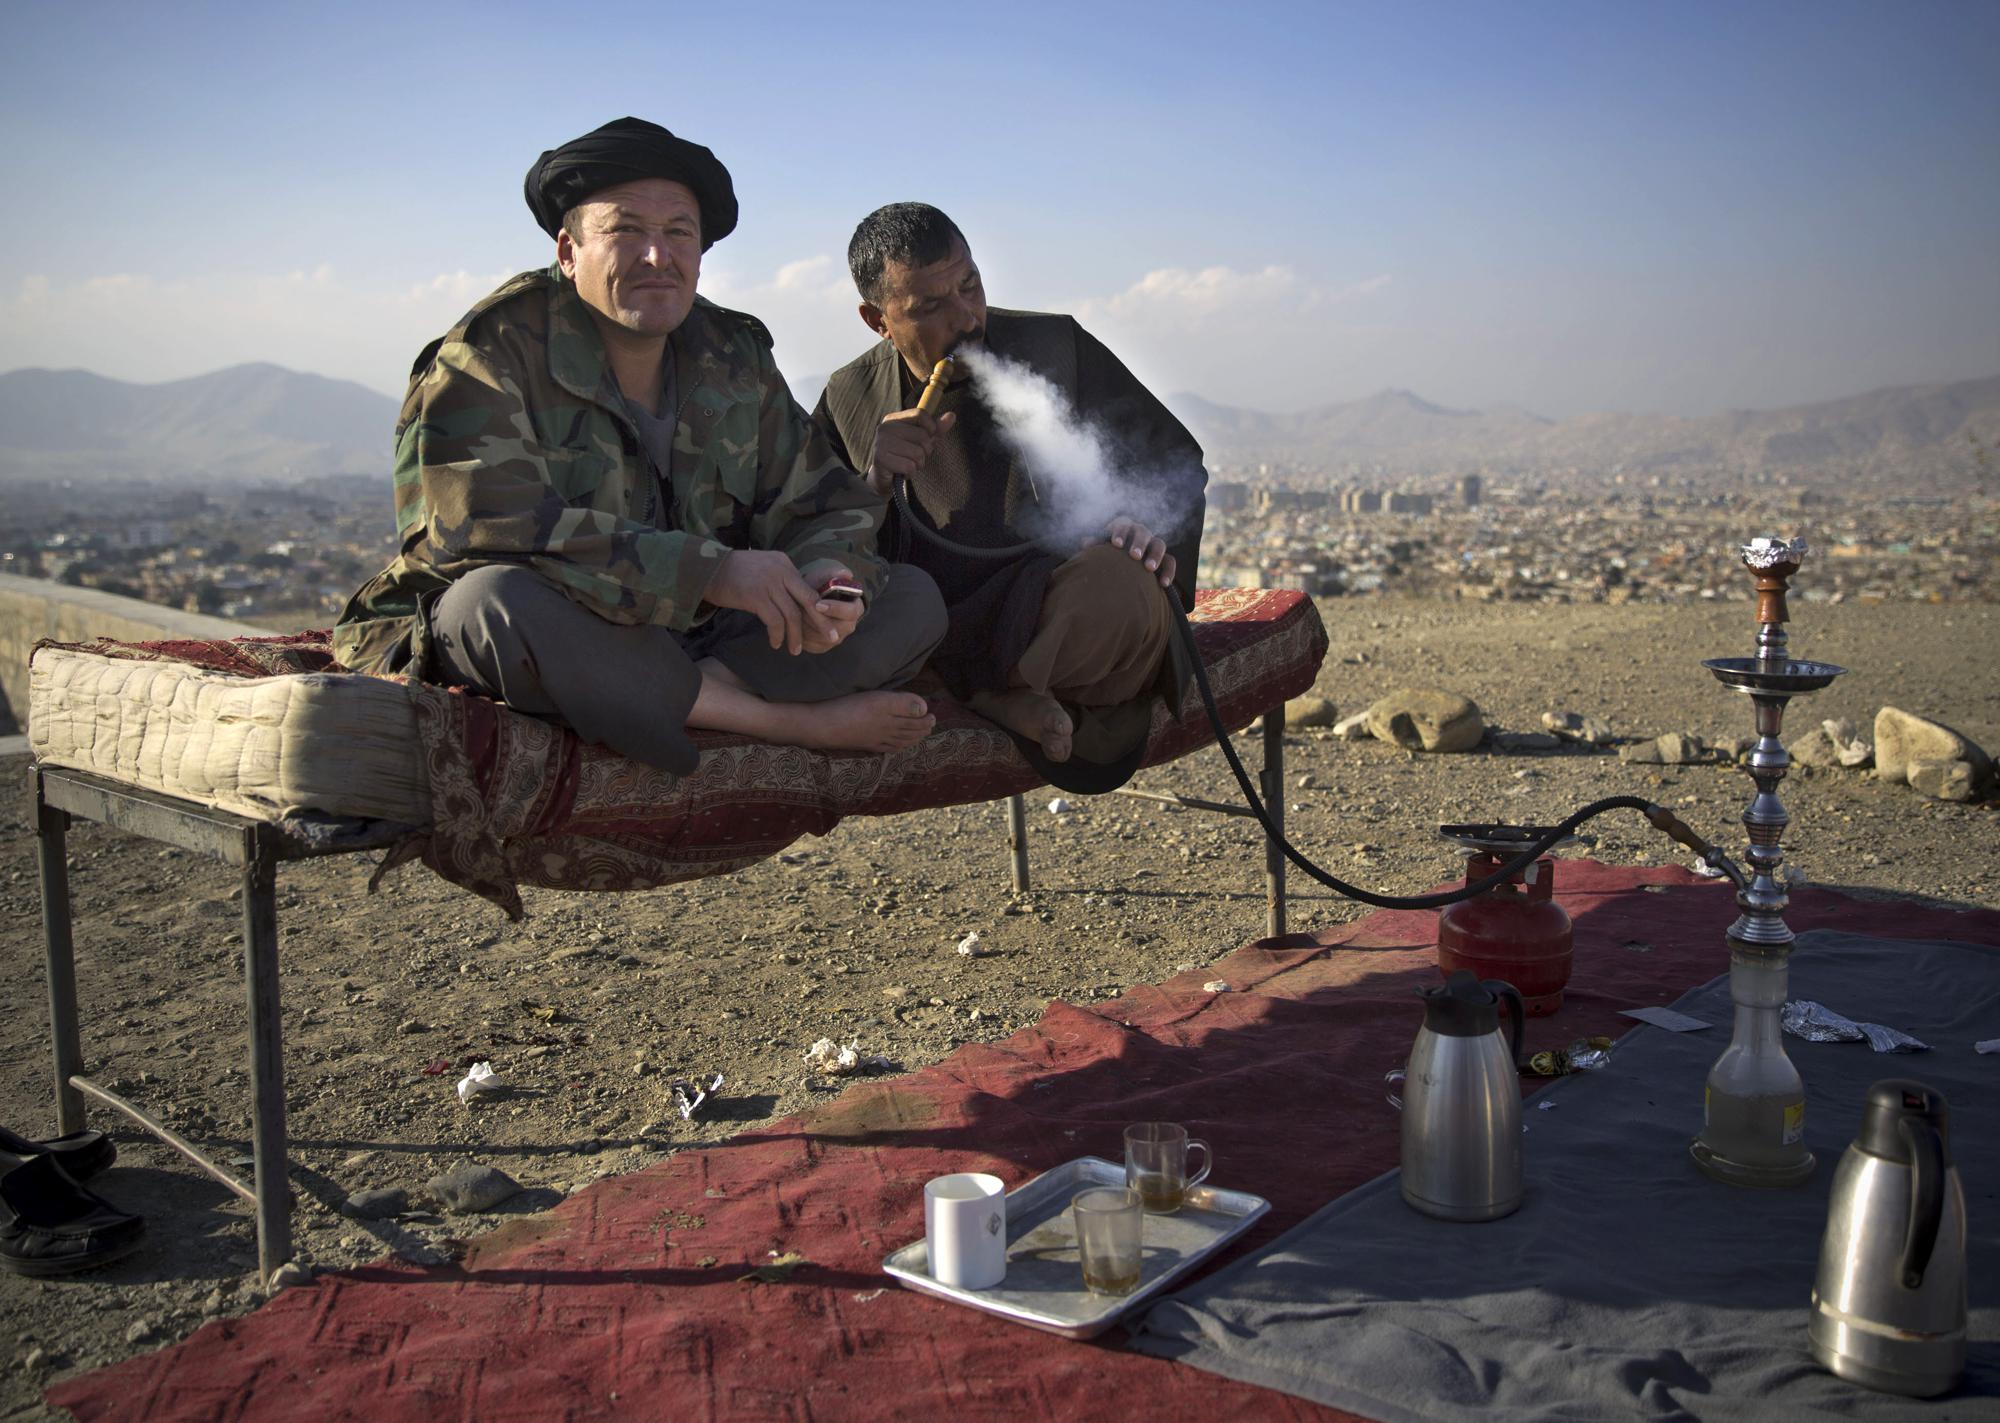 FILE - In this Nov. 25, 2013 file photo, police officers smoke a water pipe as they enjoy a quiet moment at their checkpoint overlooking Kabul, Afghanistan. (AP Photo/Anja Niedringhaus, File)